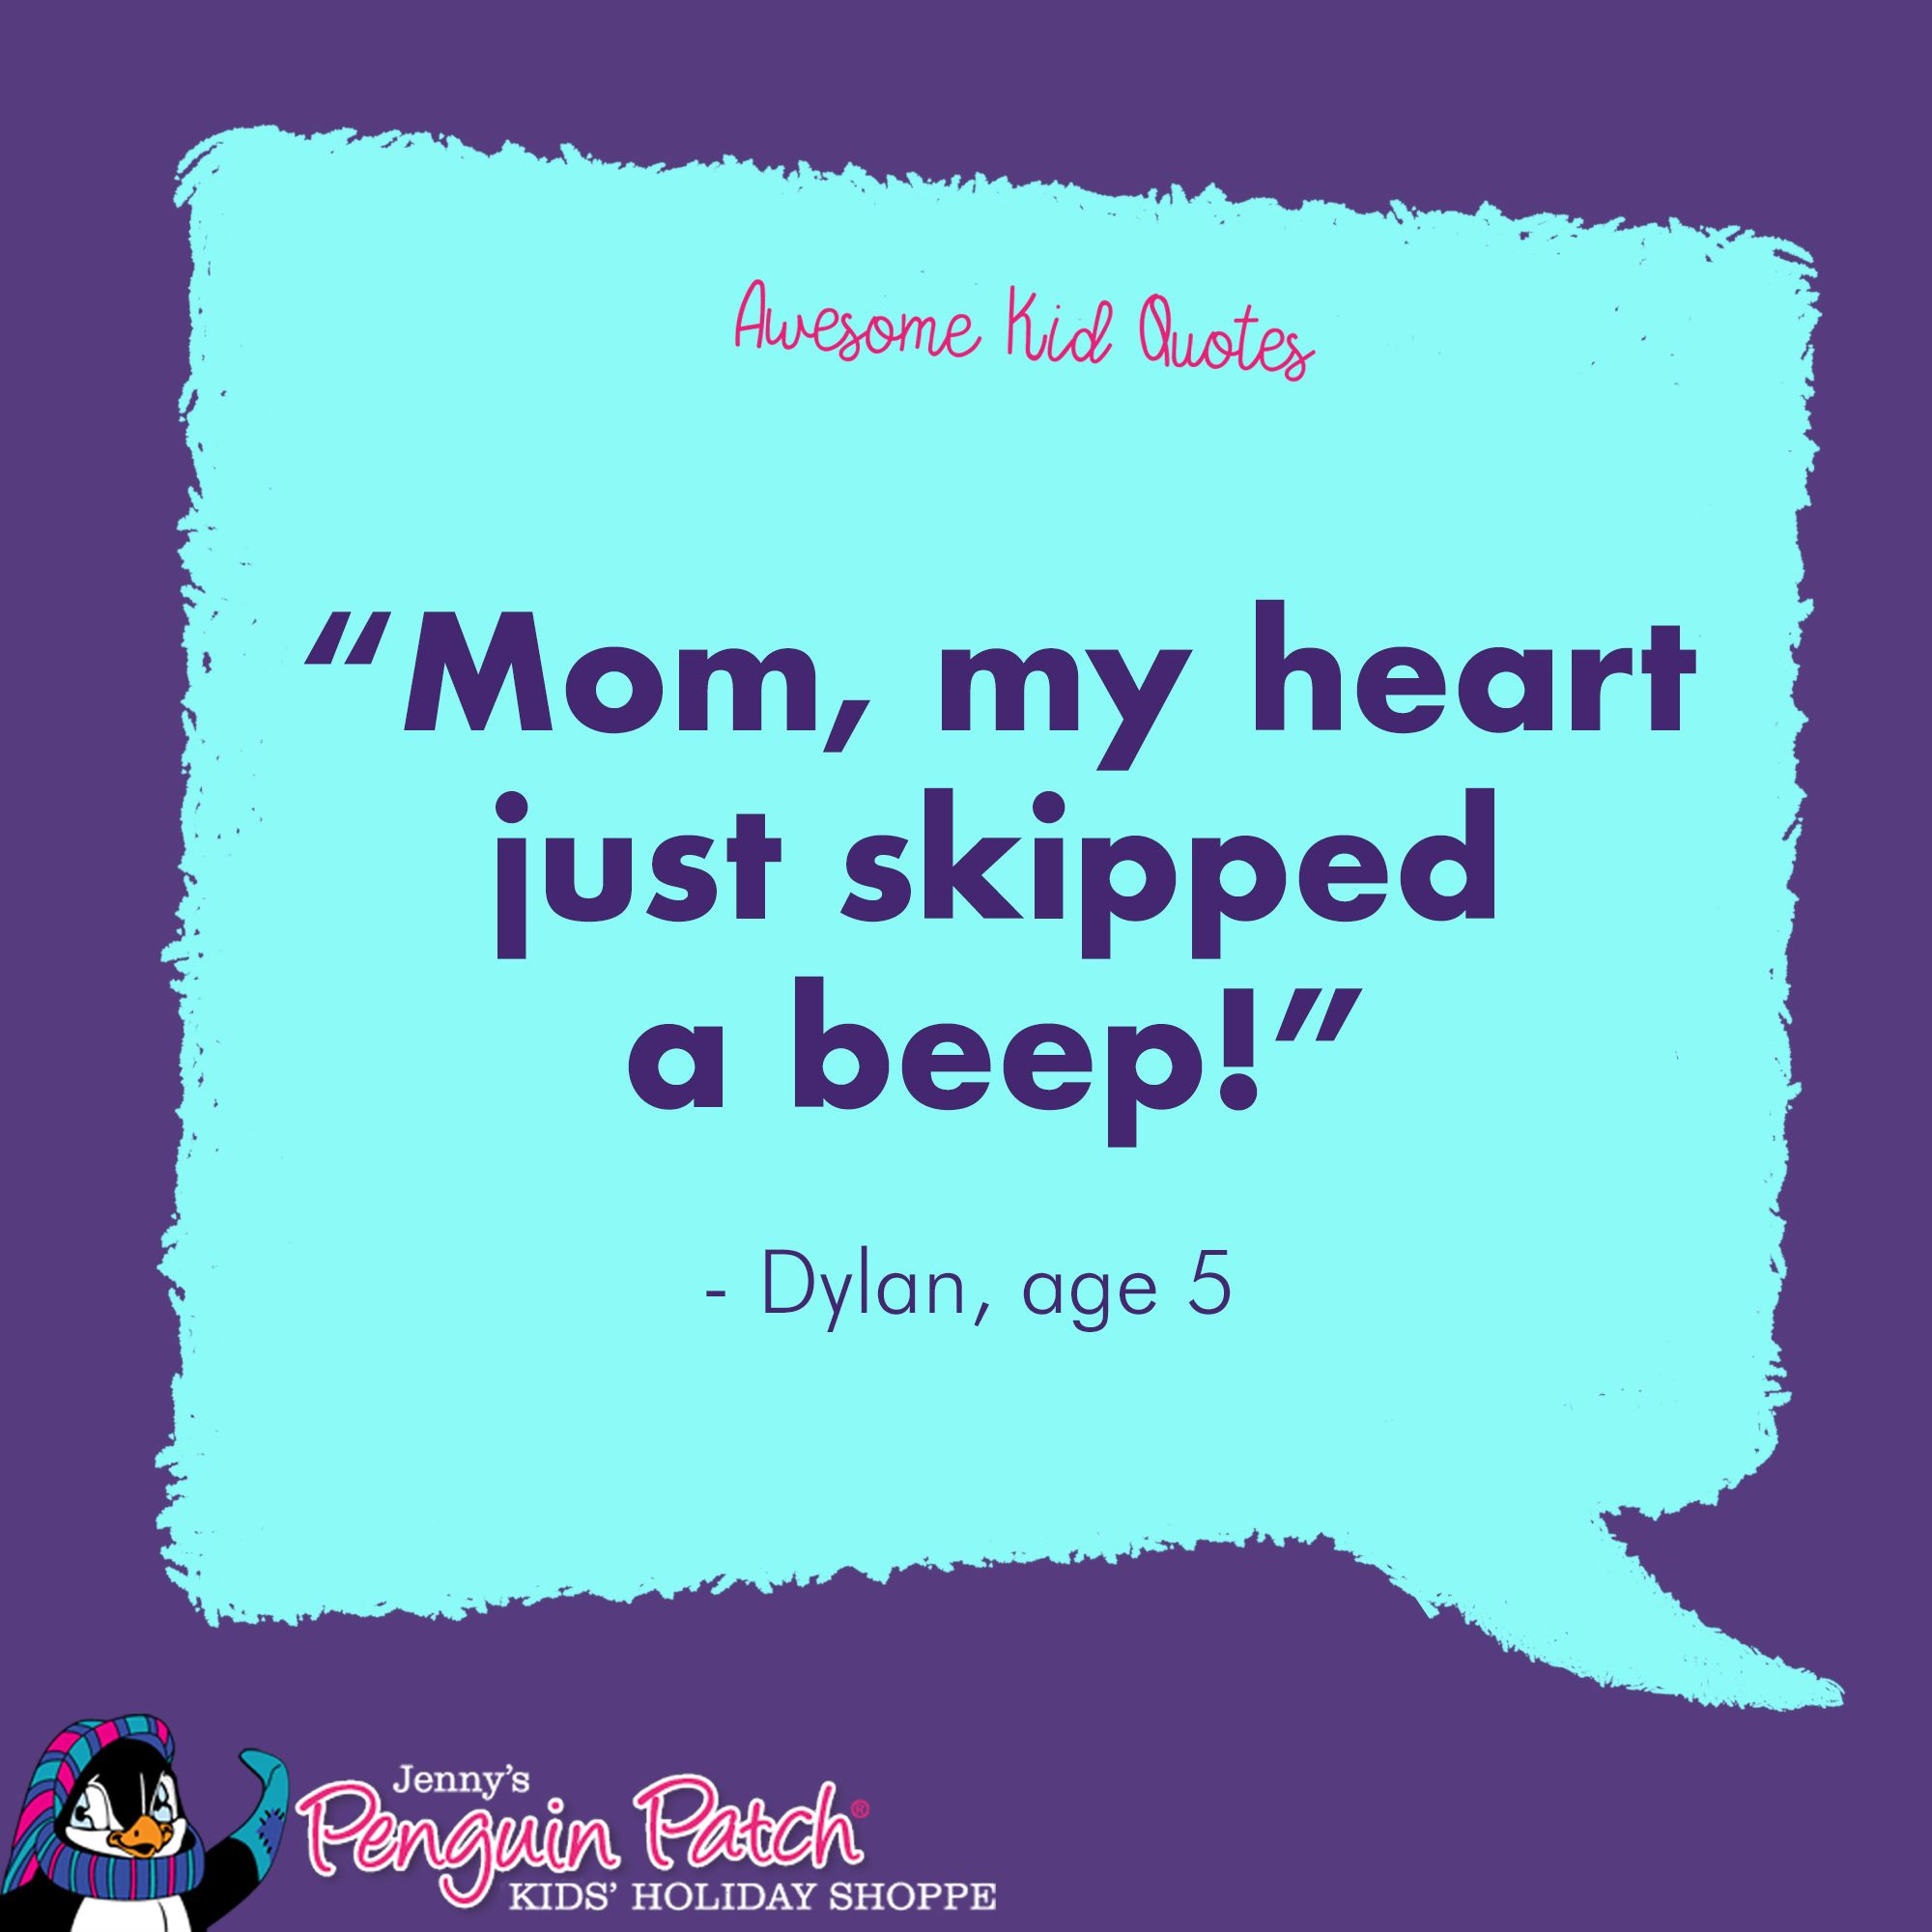 My Heart Skips A Beep When I See My Kids Funny Quotes For Kids Quotes For Kids School Holiday Gift